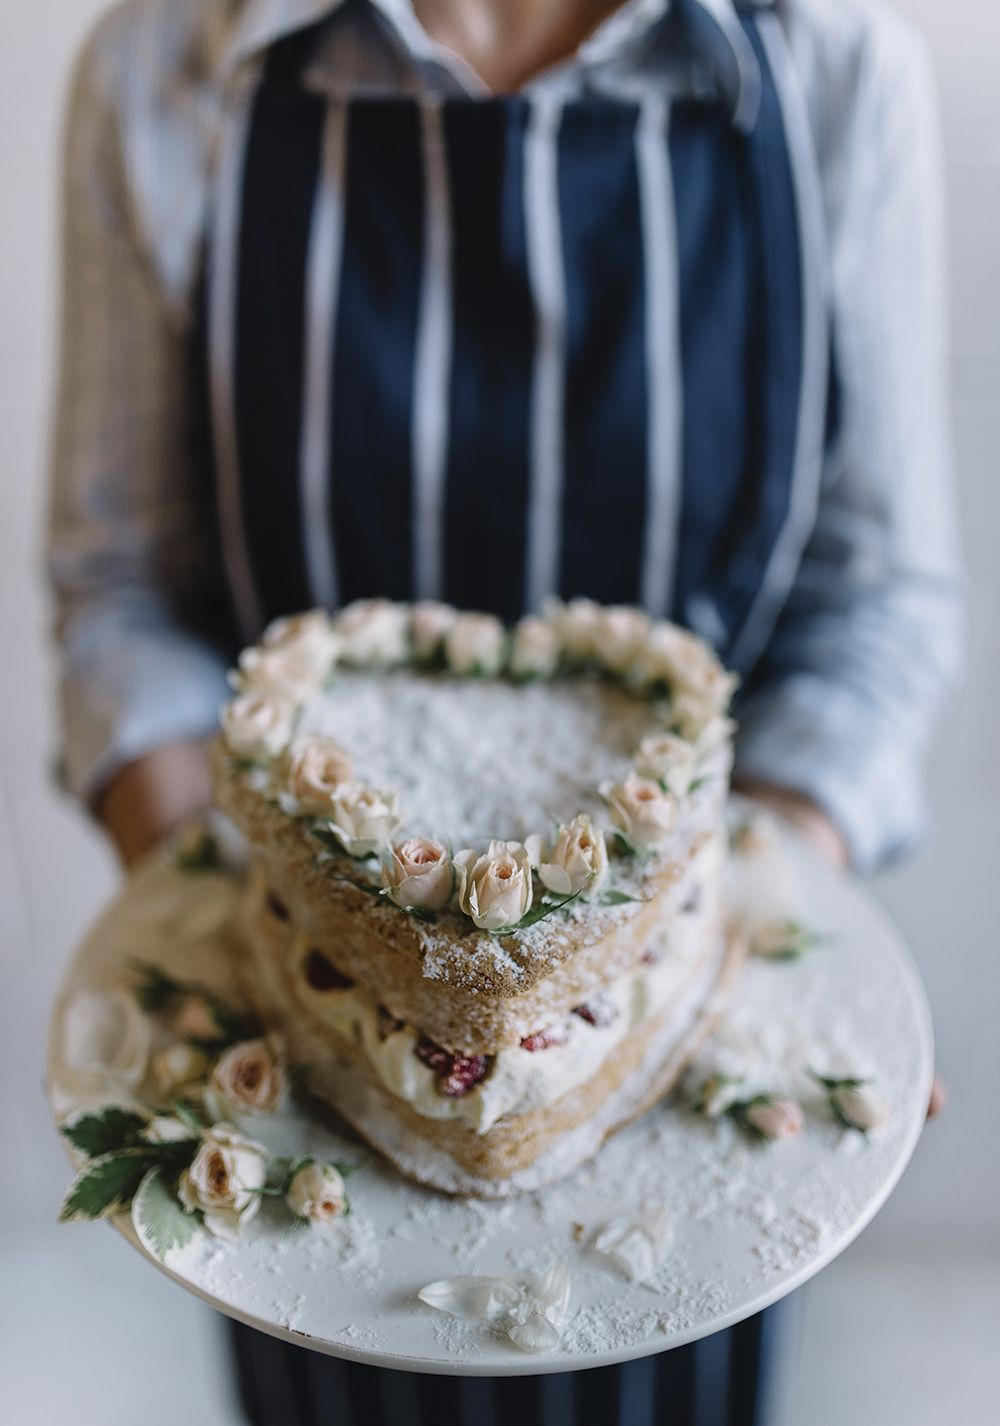 How sweet is this cake? Take a look at this heart shaped naked wedding cake from Gillian Bell and more beautiful creations. Warning: you'll get massive cake cravings though. http://www.queenslandbrides.com.au/top-tier-stunning-cakes-taste-good/?utm_campaign=coschedule&utm_source=pinterest&utm_medium=Queensland%20Brides%20Magazine&utm_content=Top%20Tier%3A%20stunning%20cakes%20that%20taste%20good%20too